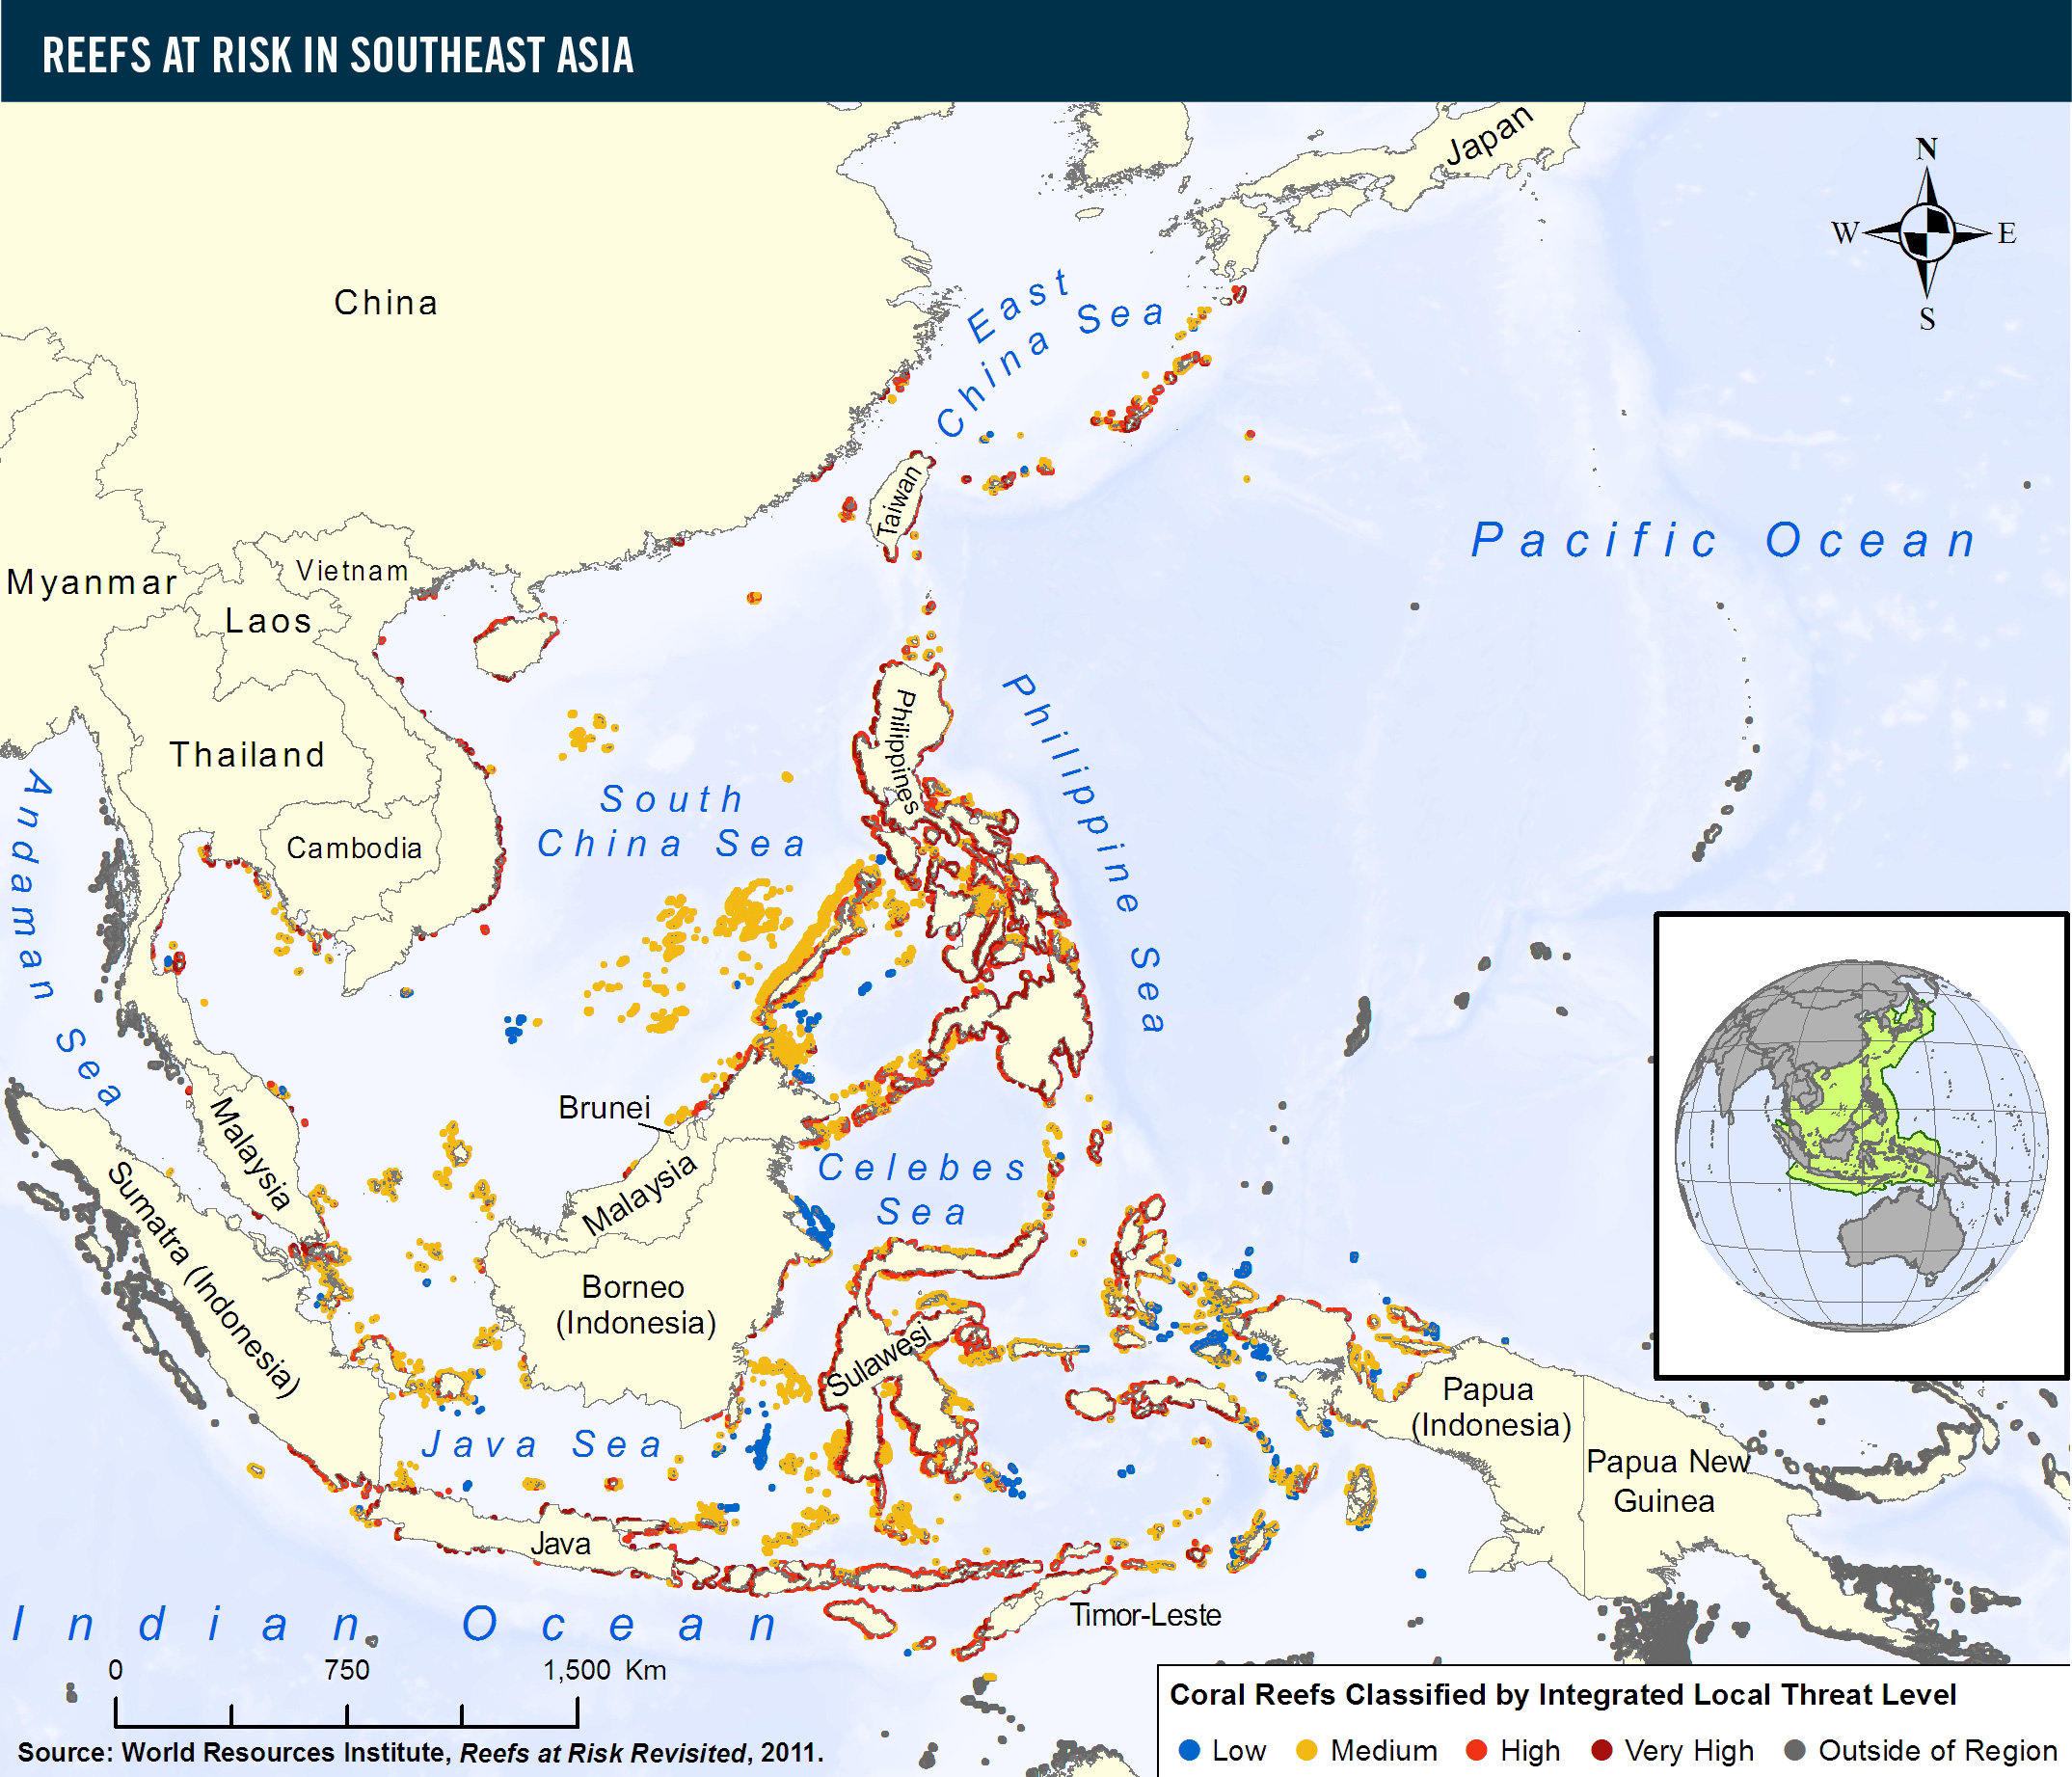 Reefs at Risk in Southeast Asia | World Resources Institute